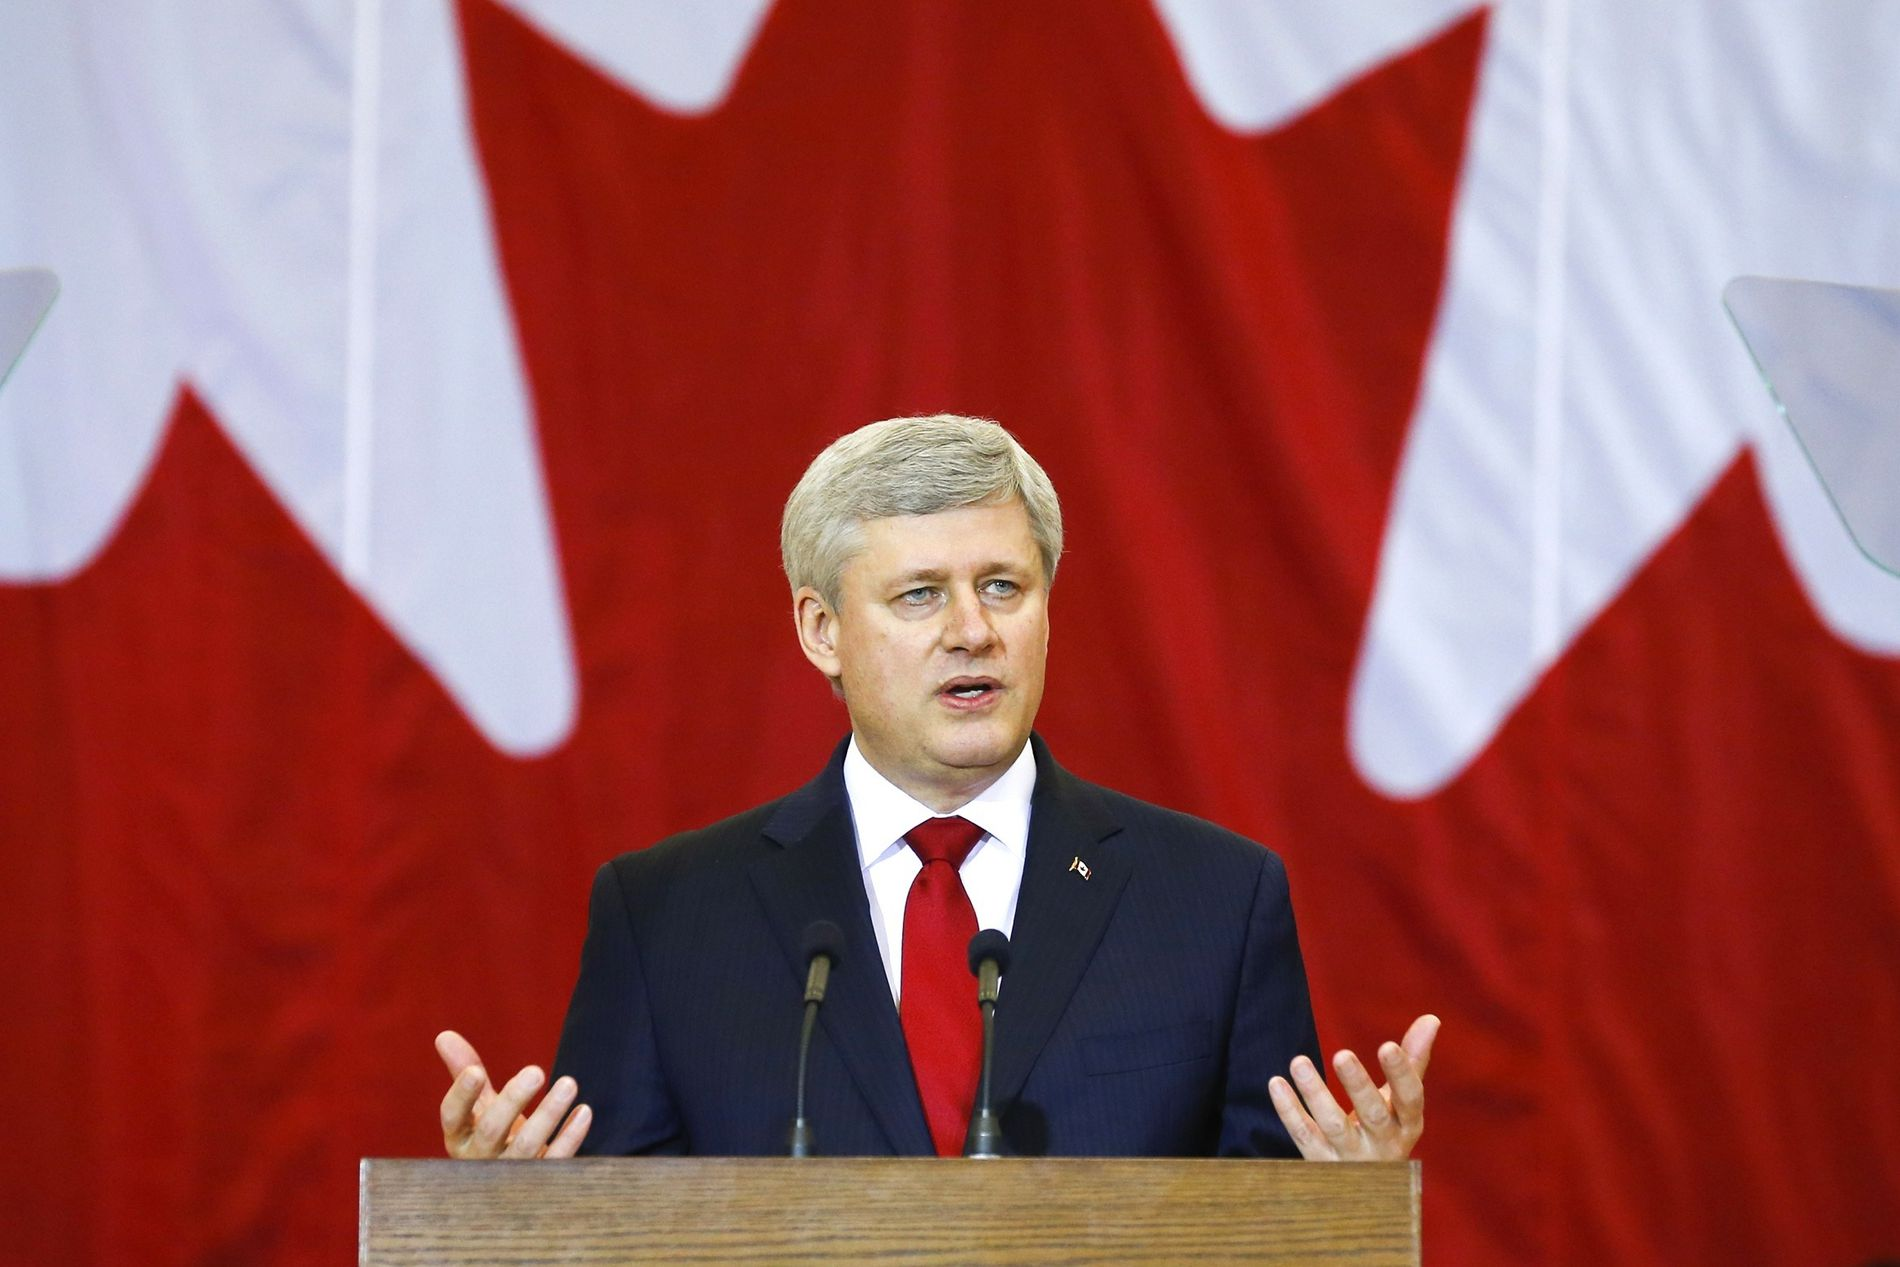 Stephen Harper makes thinly veiled critique of China in historic visit to Taiwan